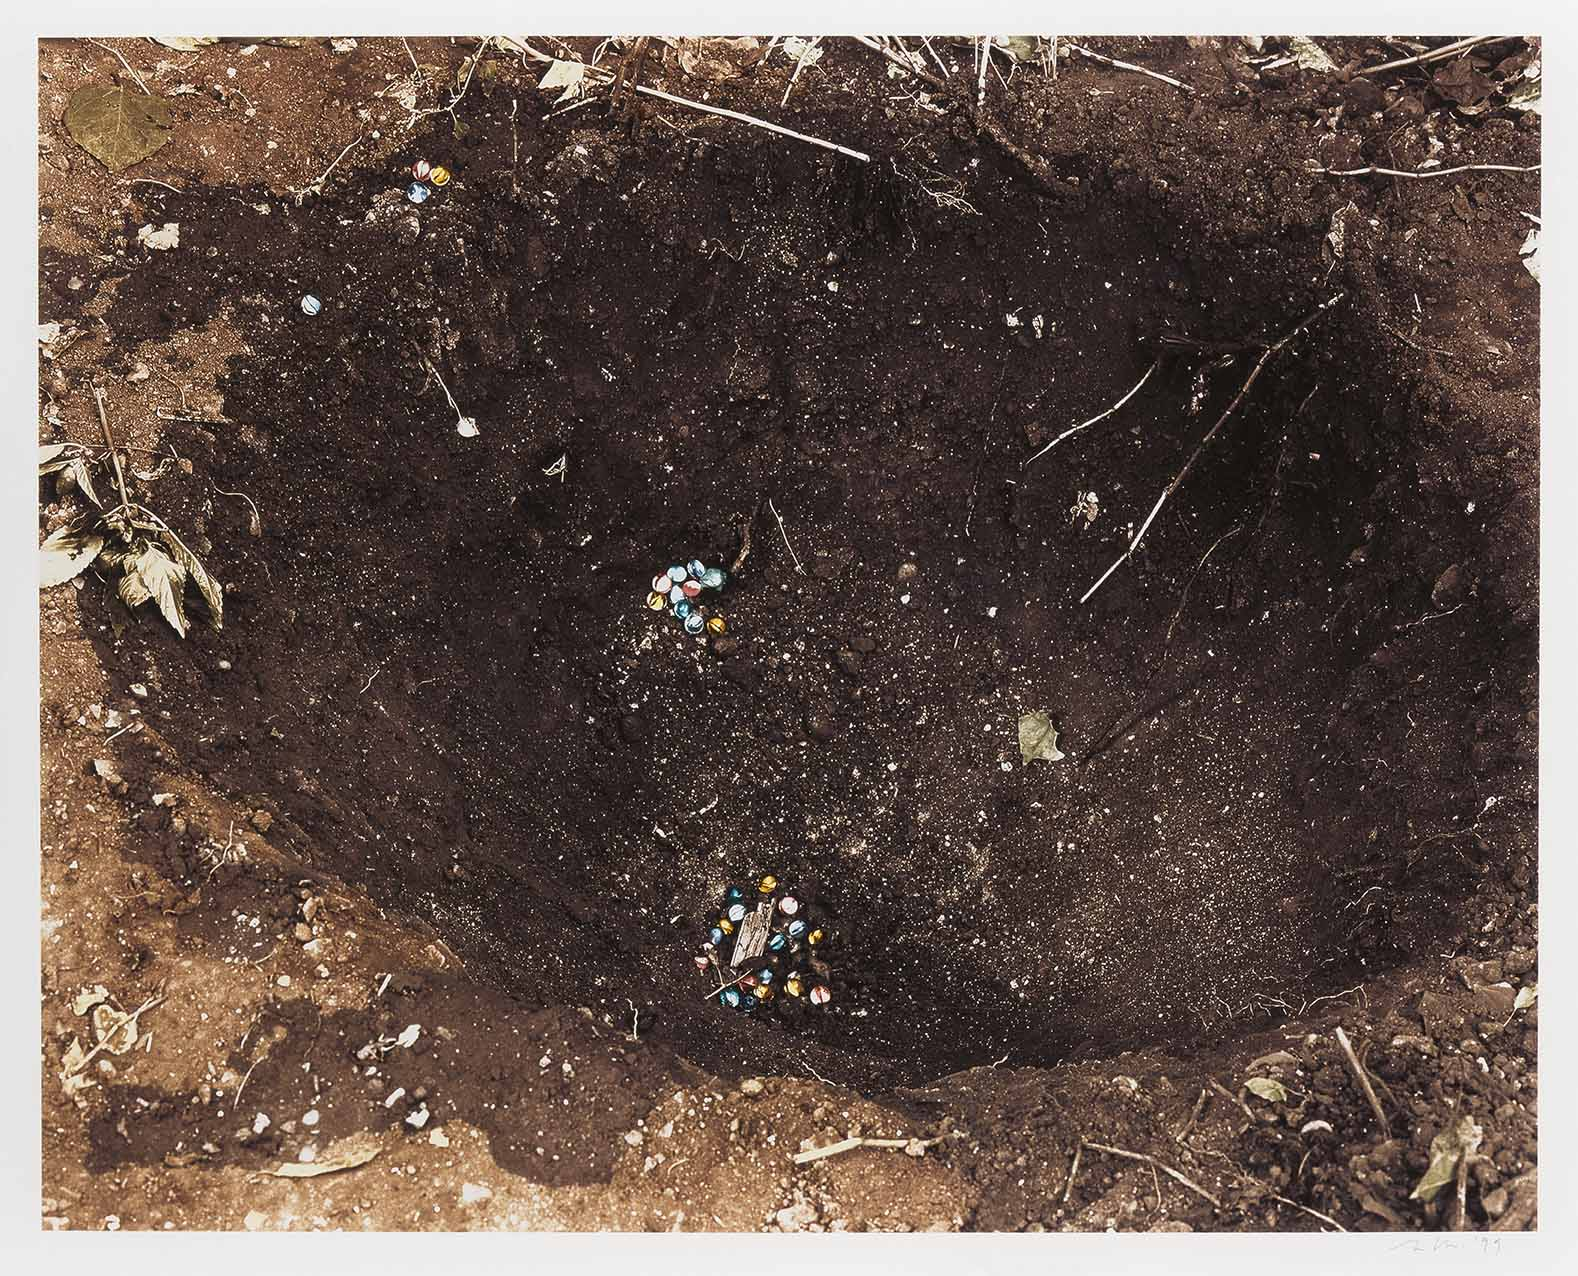 Hole in the ground (1998) - Hannah Collins